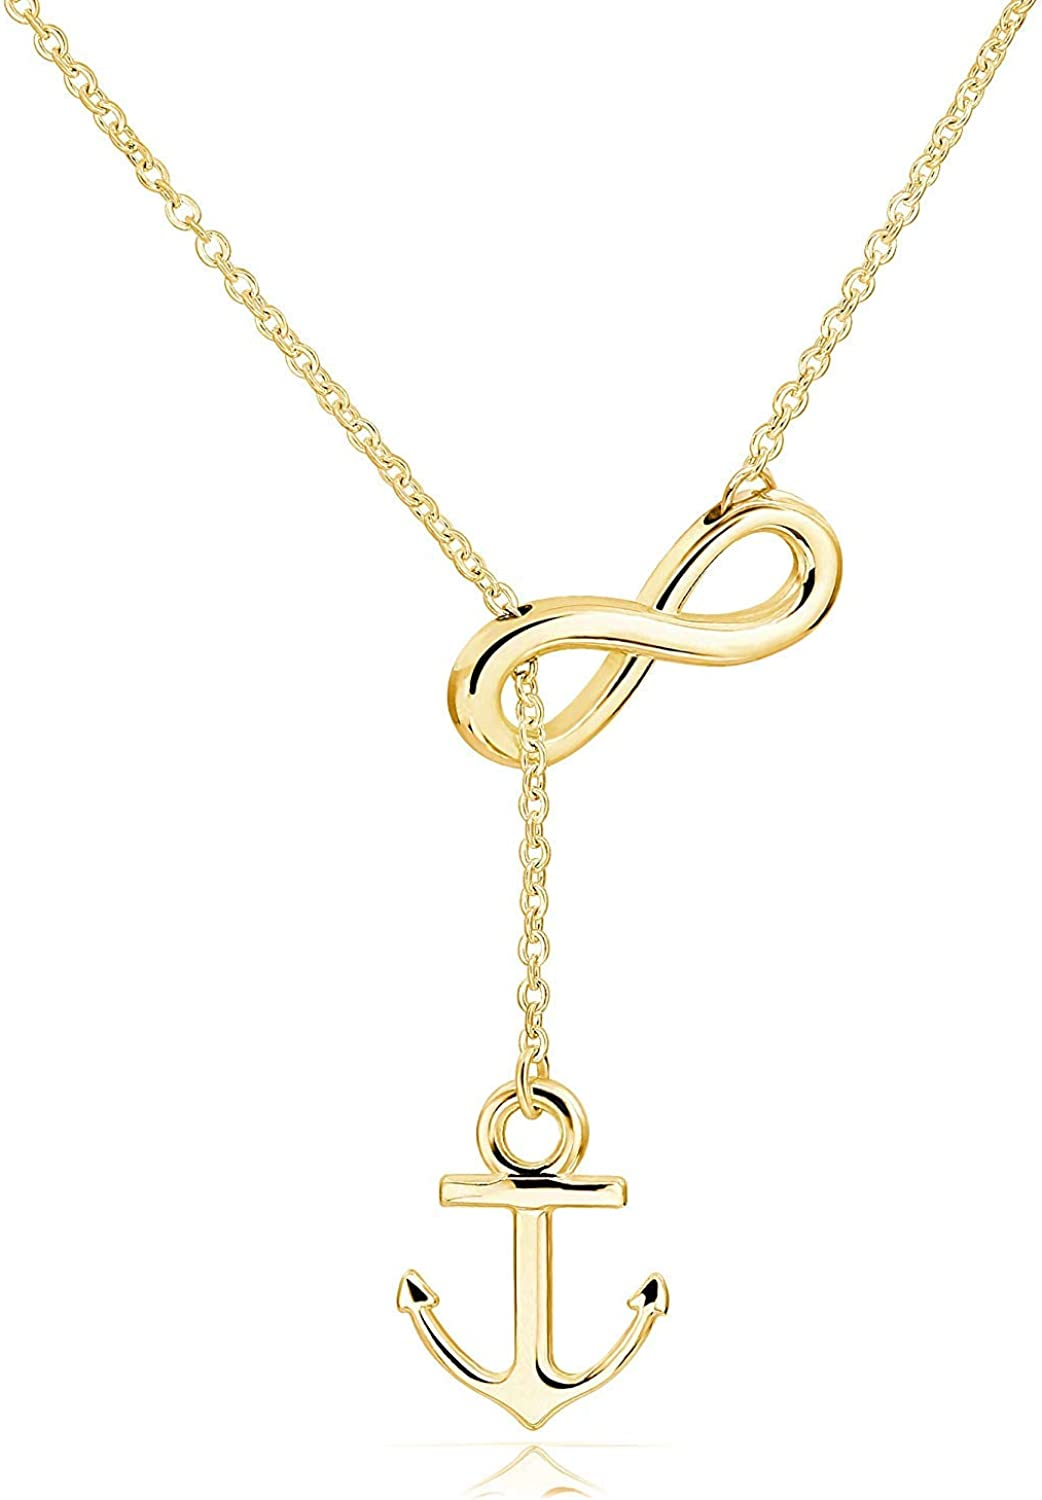 LAOFU Anchor and Infinity Necklace Sterling Silver Anchor Infinity Pendant Infinity Lariat Necklace